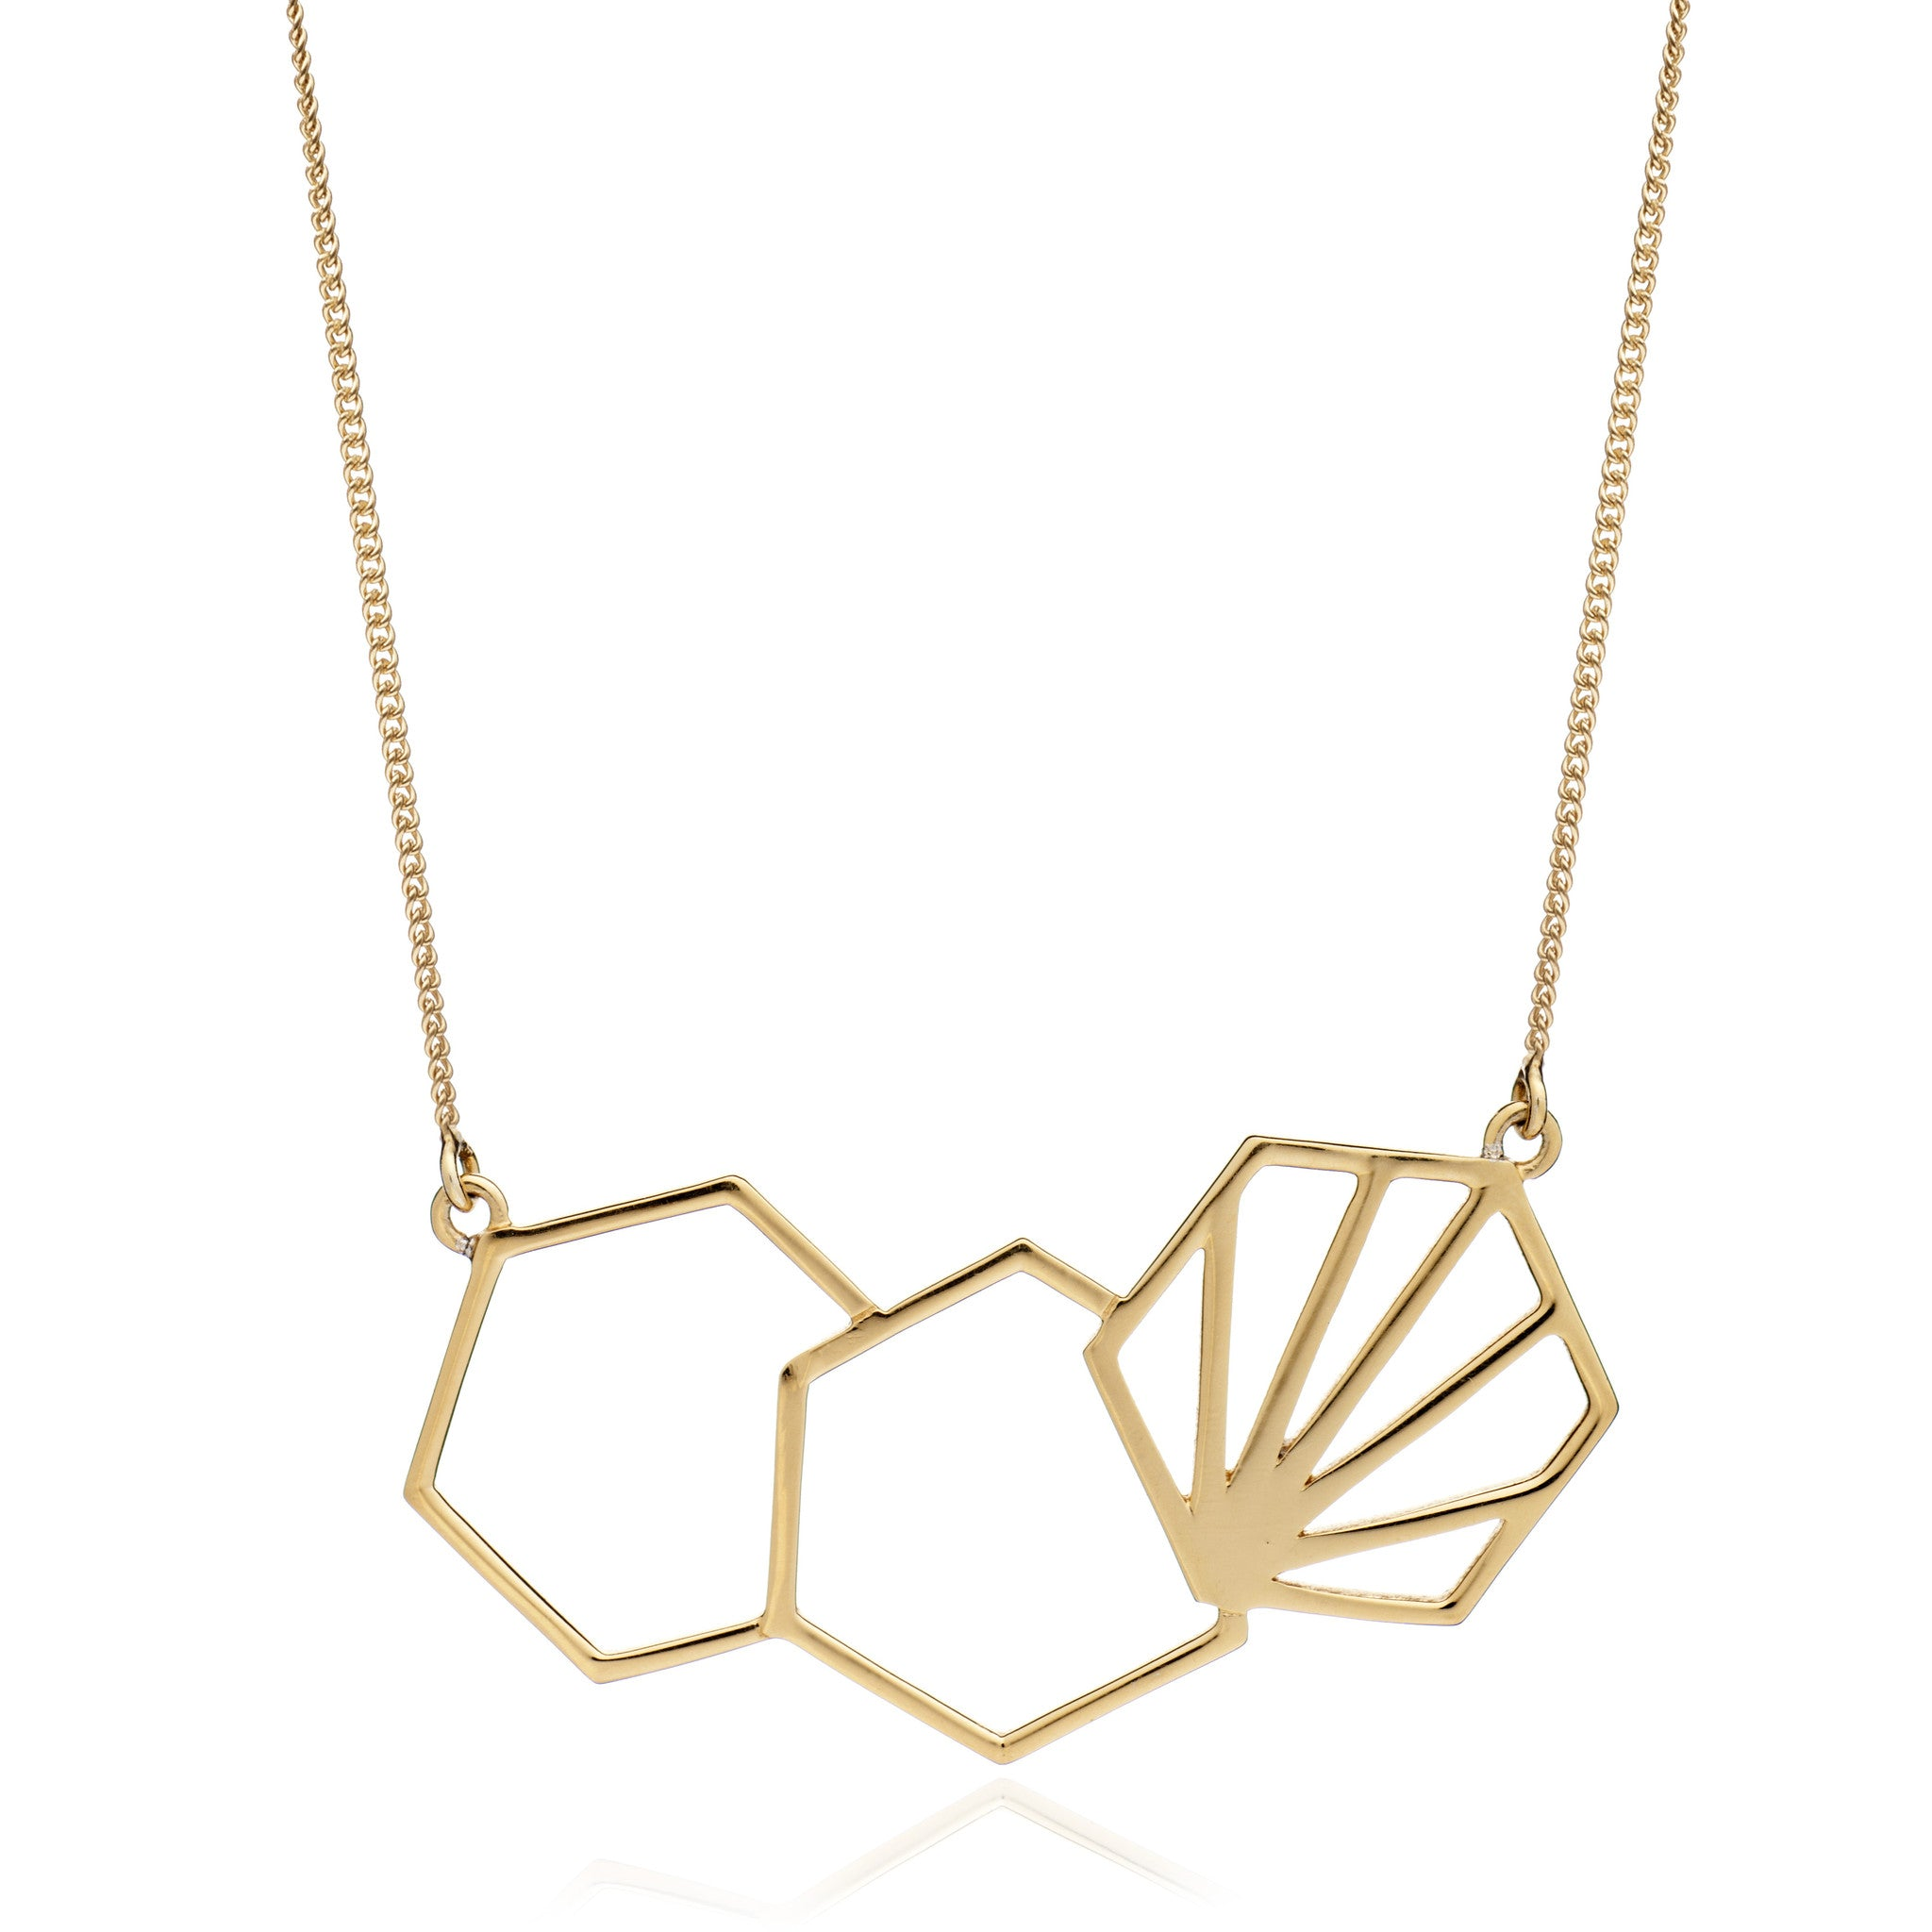 Hexagon gold necklace Rachel Jackson London